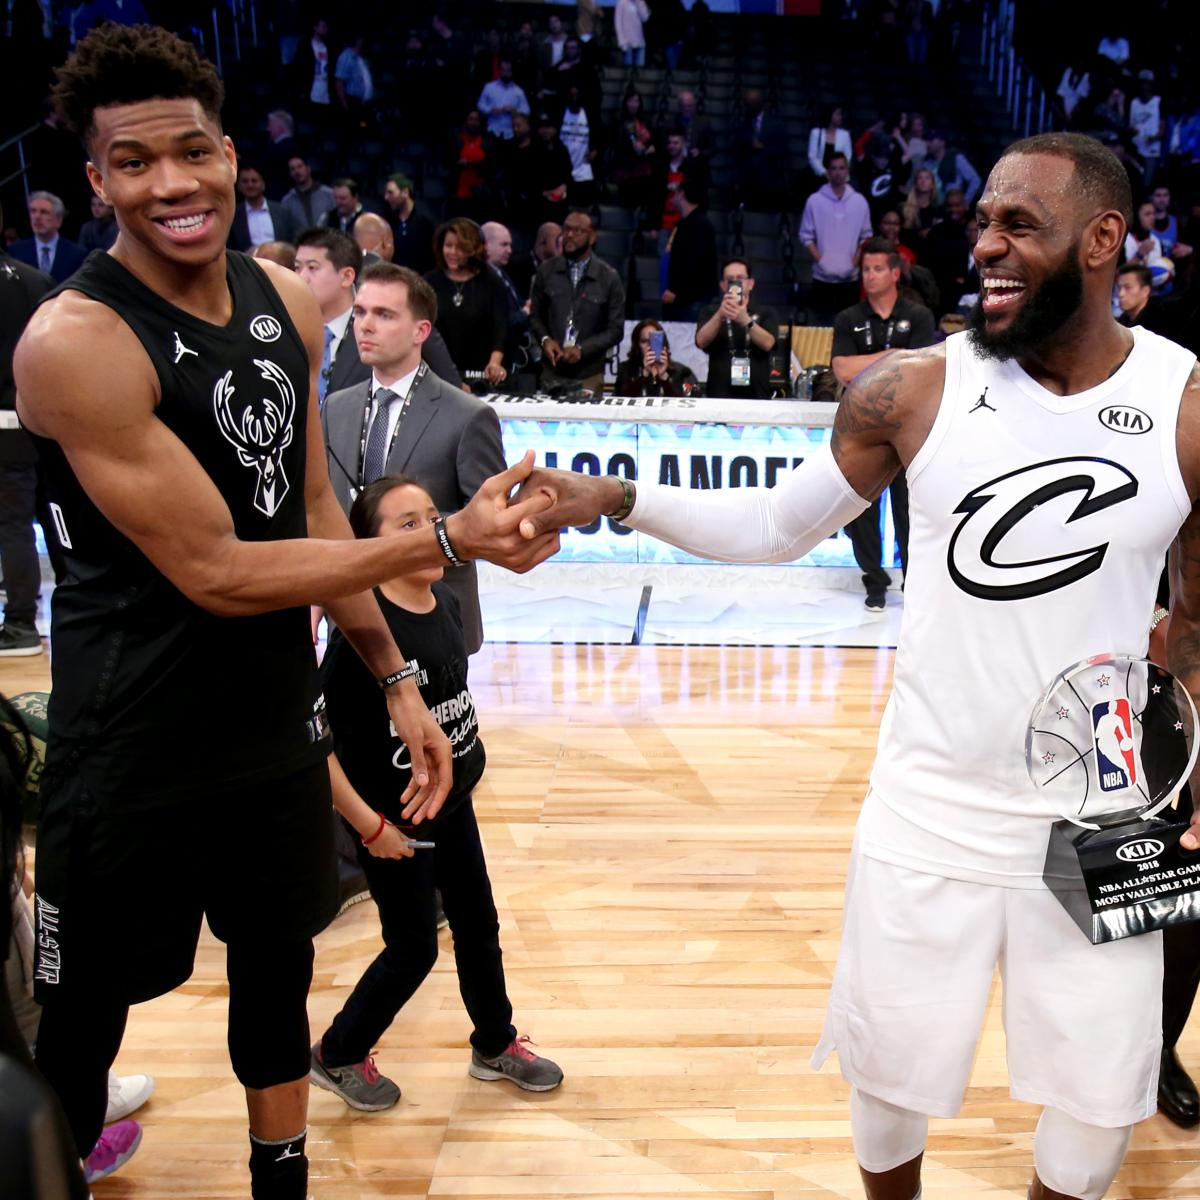 Nba Celebrity All Star Game 2019 Rosters Start Time Tv: NBA All-Star Game 2019: TV Schedule For Reserves Reveal